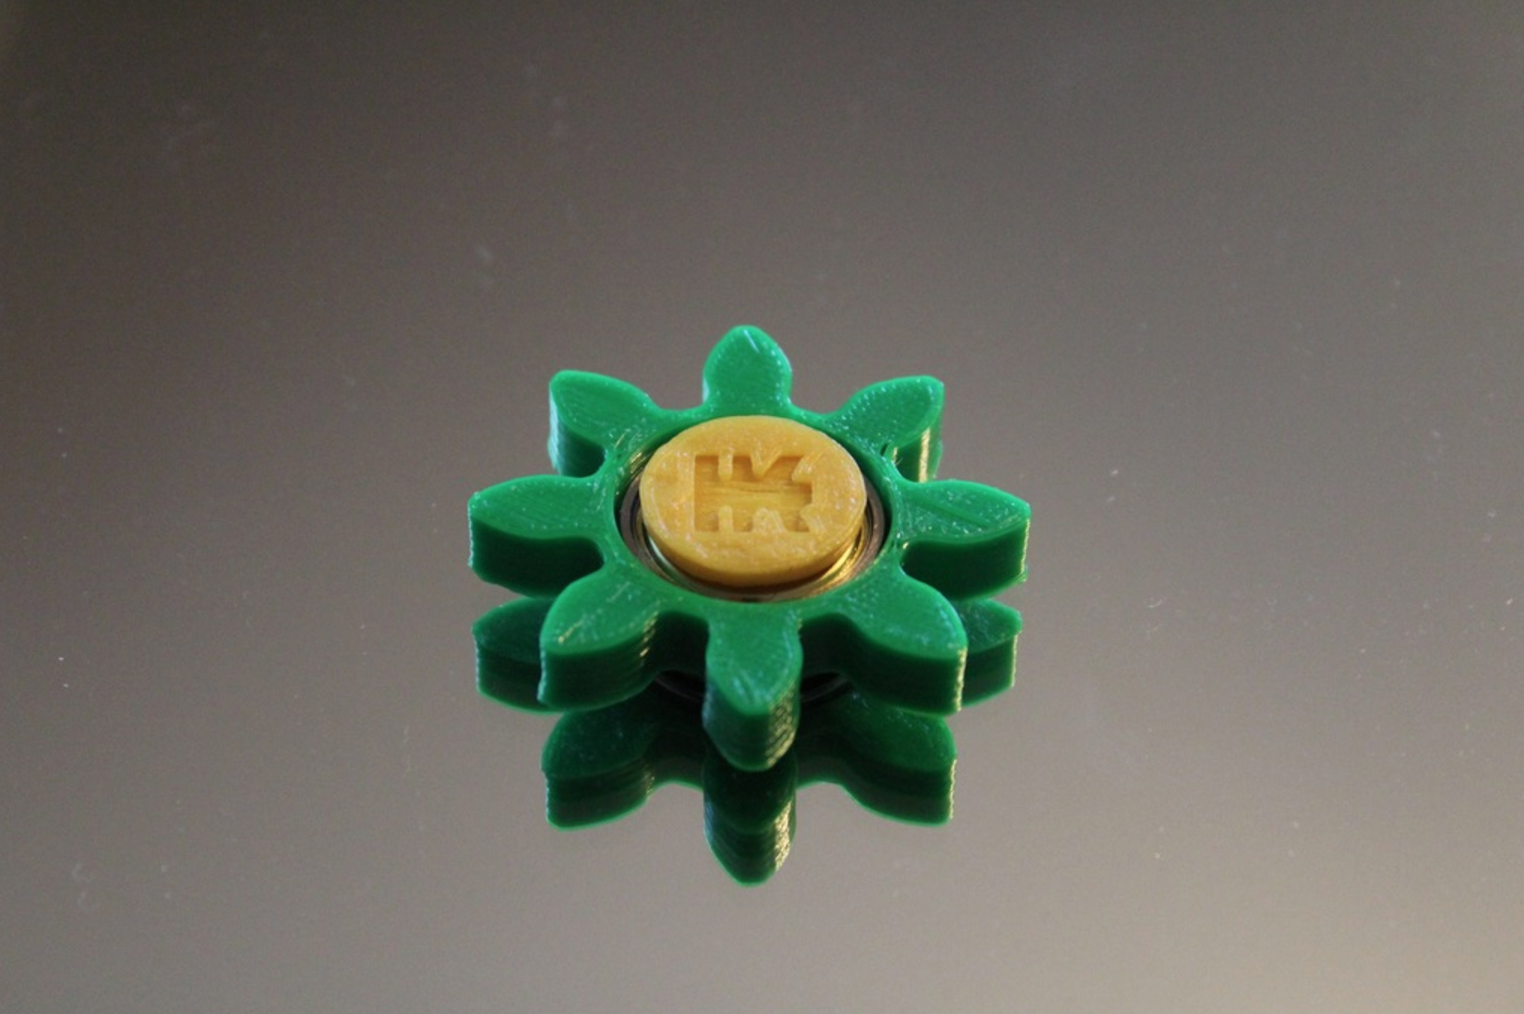 Capture d'écran 2017-06-09 à 09.34.42.png Download free STL file Gear/Flower Spinner • 3D print model, 3DPrintingGurus